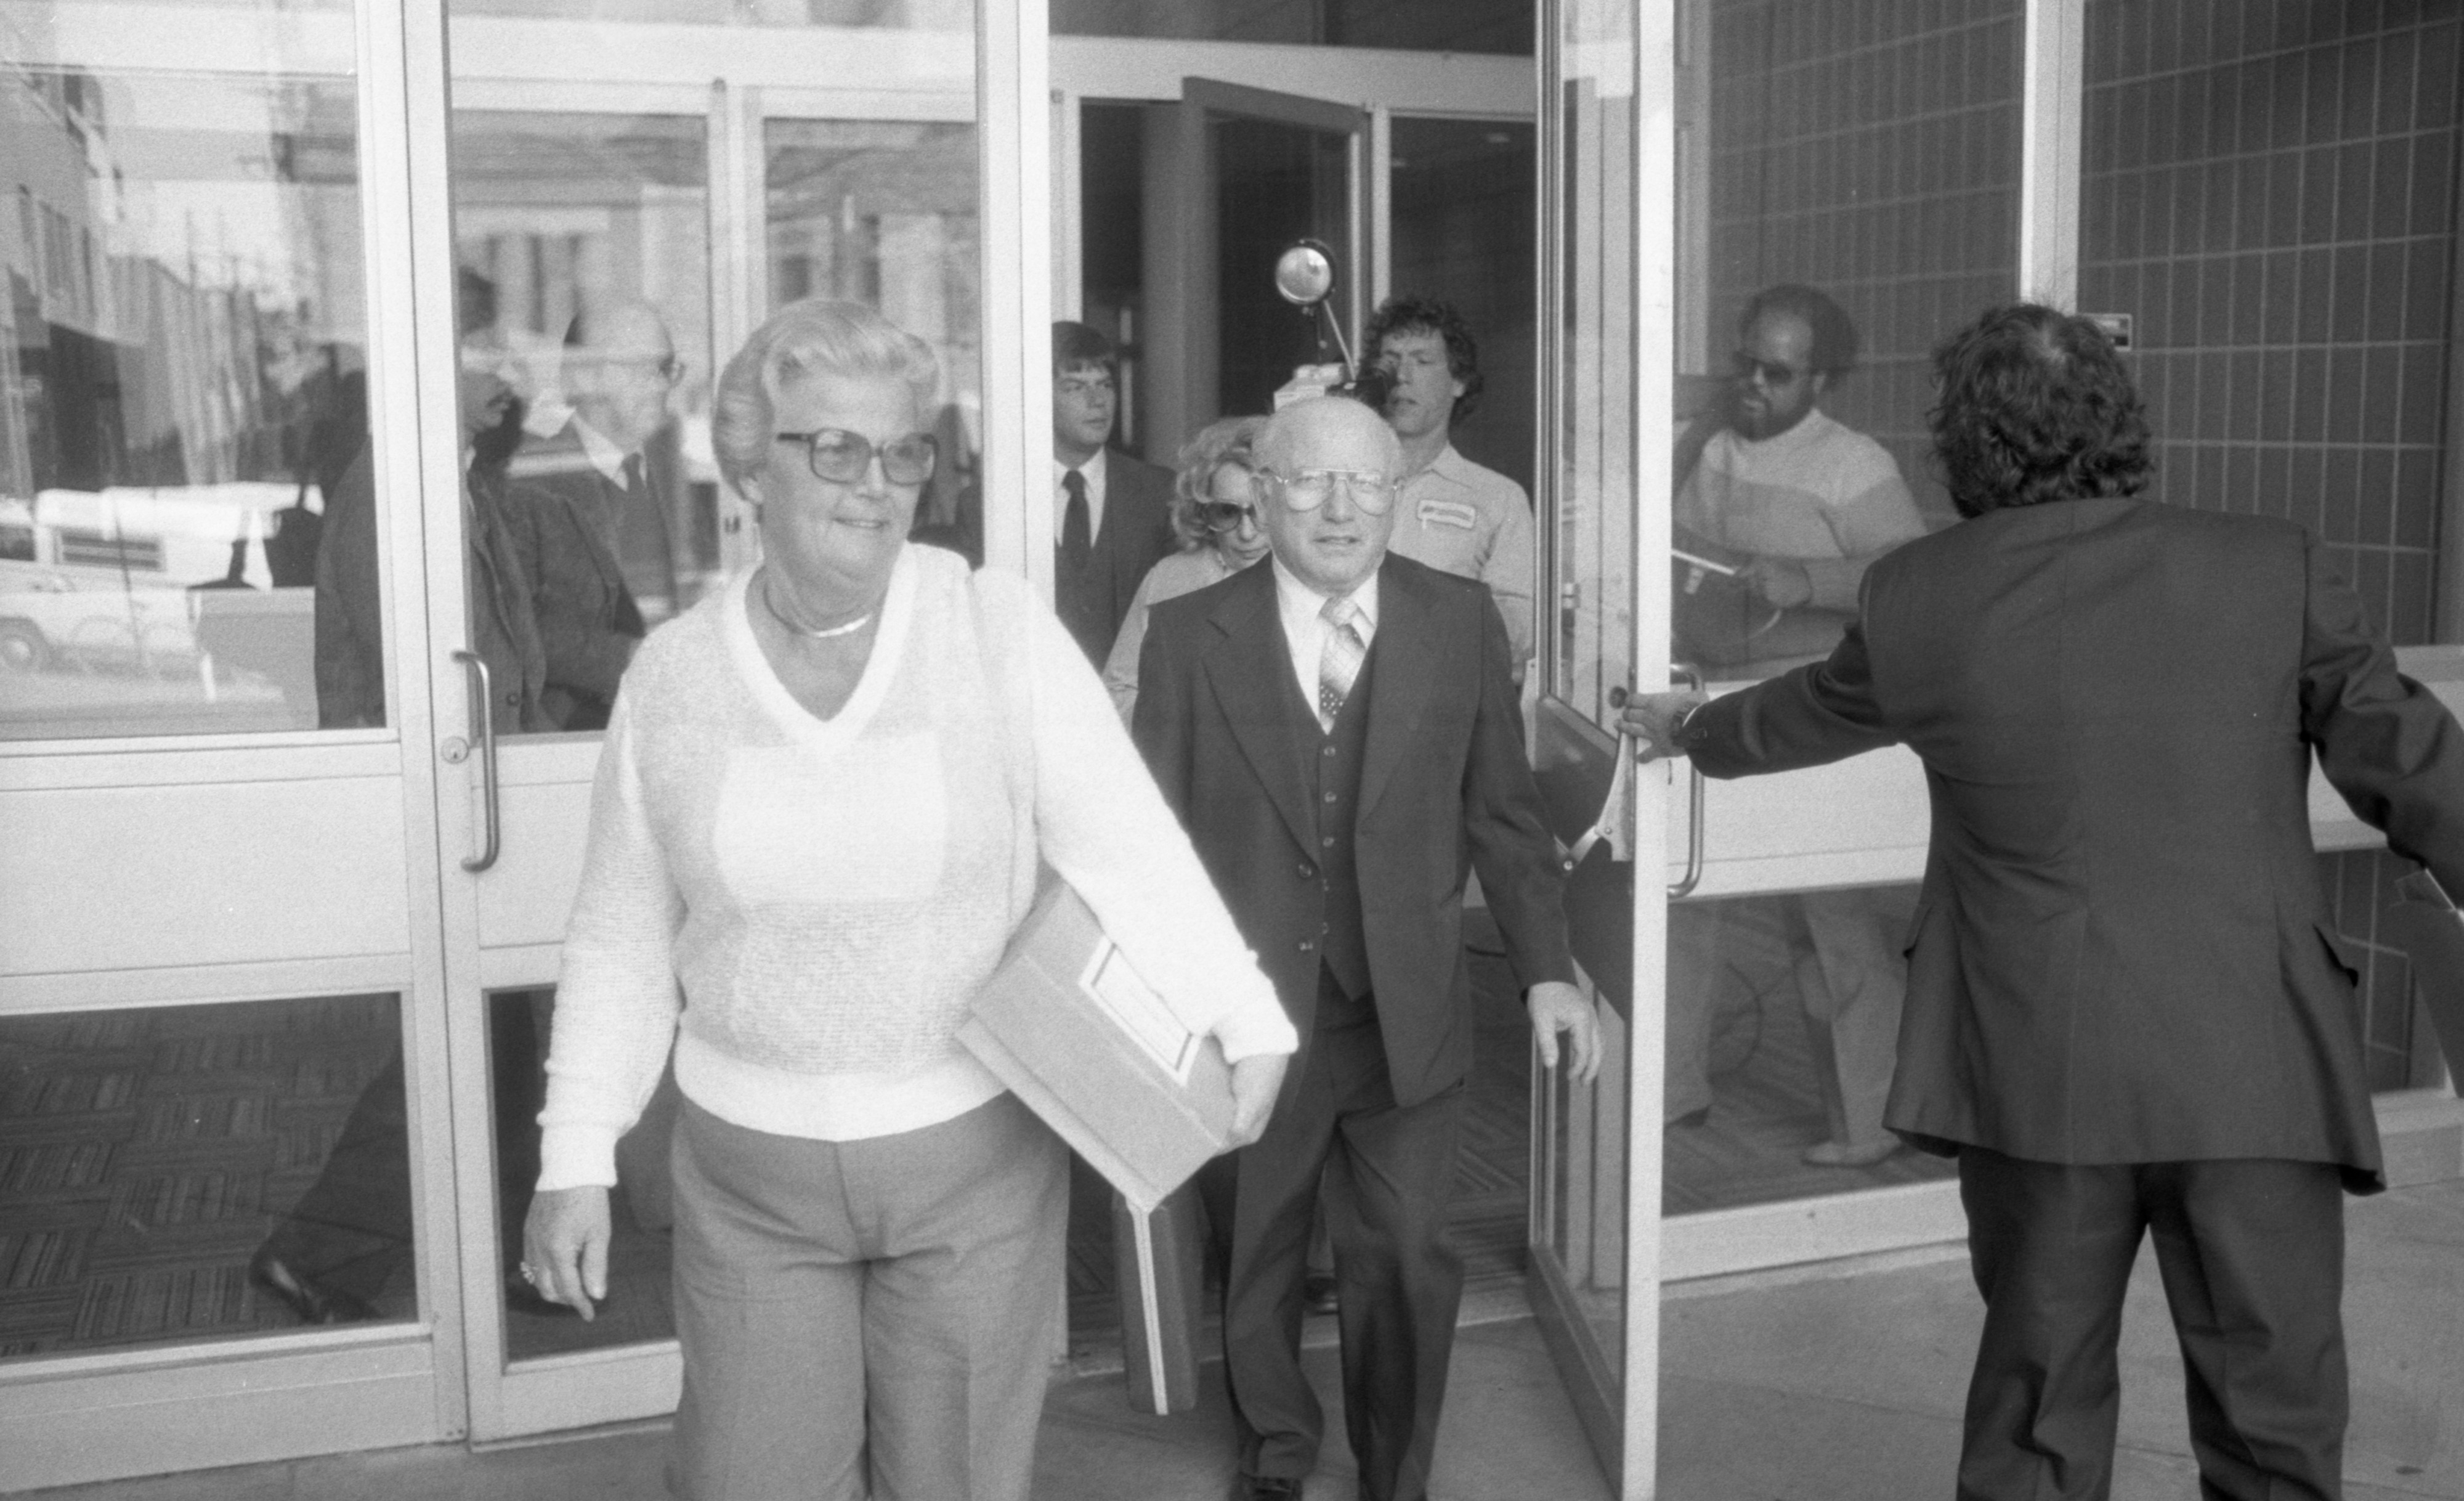 Ike & Margarethe Kozminski Leave Court After Sentencing, April 1984 image